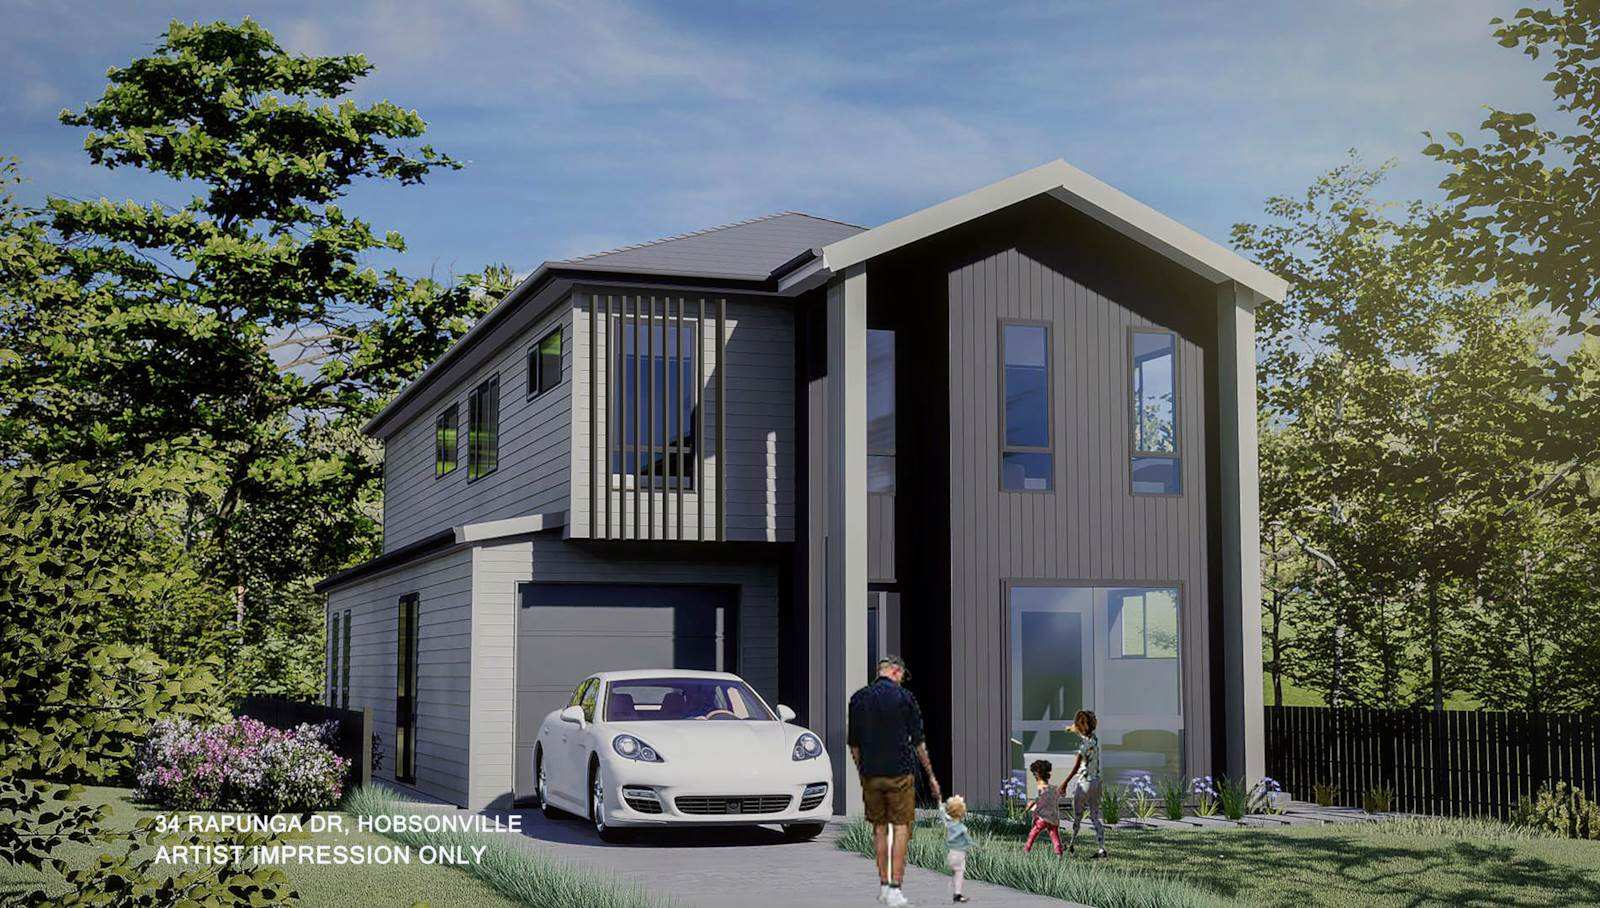 Hobsonville 5房 全新在建美居 首付仅需10% 漫步至海滩 靠近新小学 轻松通勤市中心! No Competition Yet - Secure your family home now!